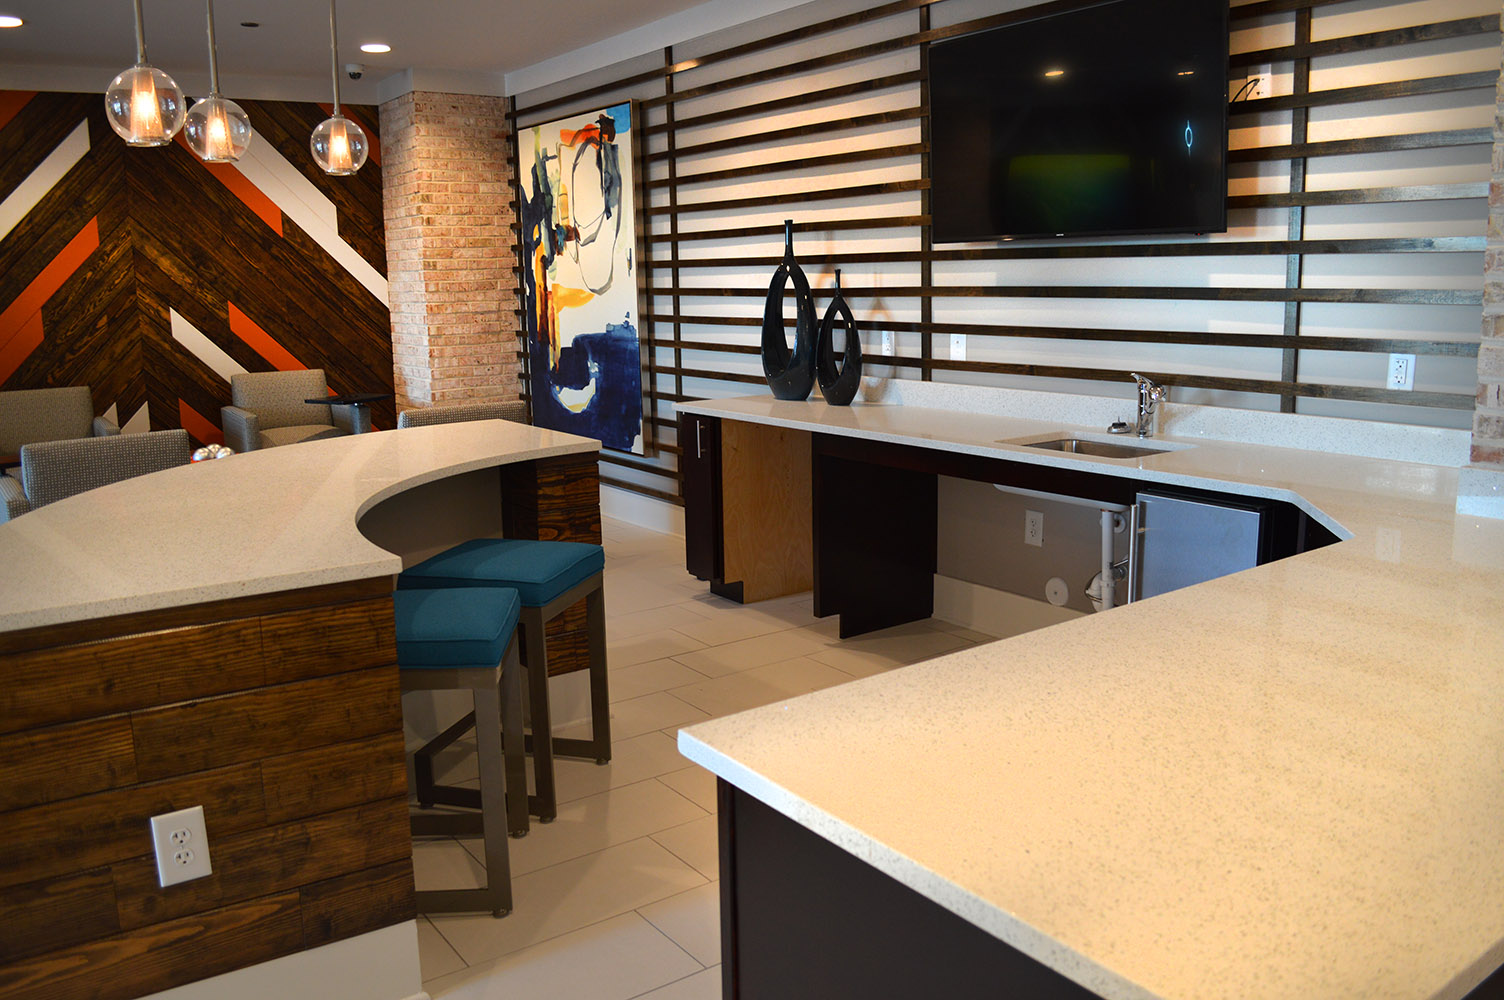 Link Apartment's (Greenville, SC) Commons Area Countertops made with White Lace Quartz